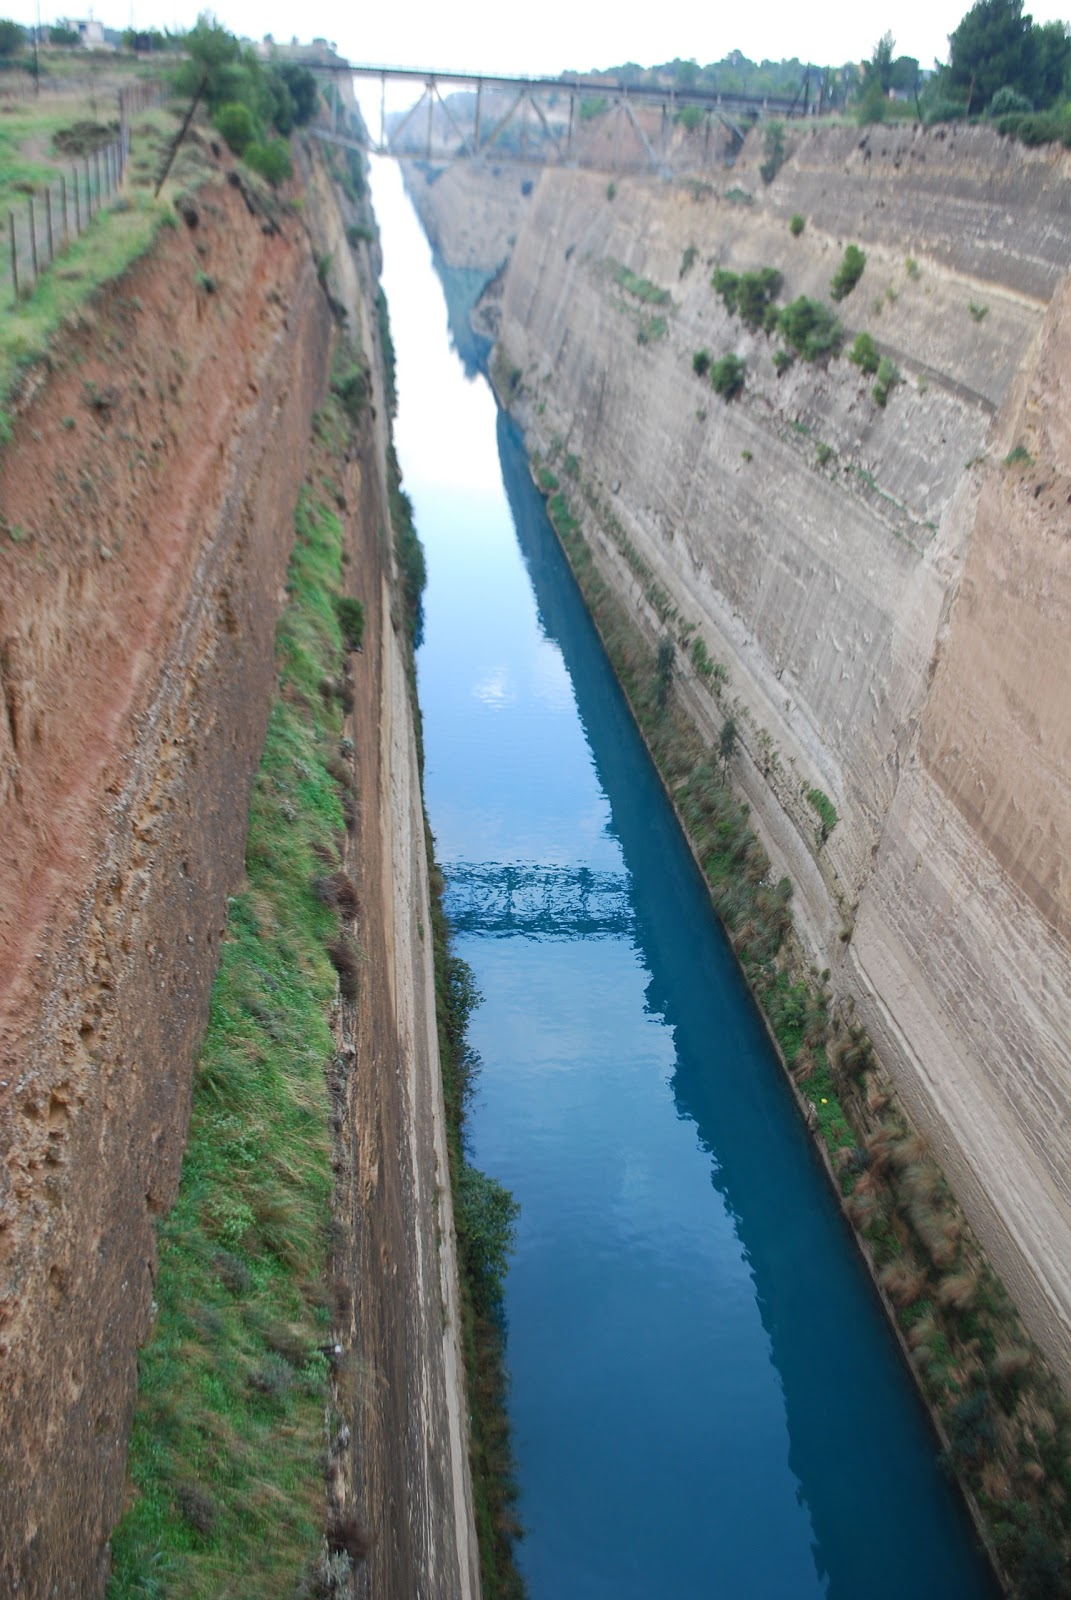 The Corinth Canal, which turned the Peloponnese peninsula into an island 67